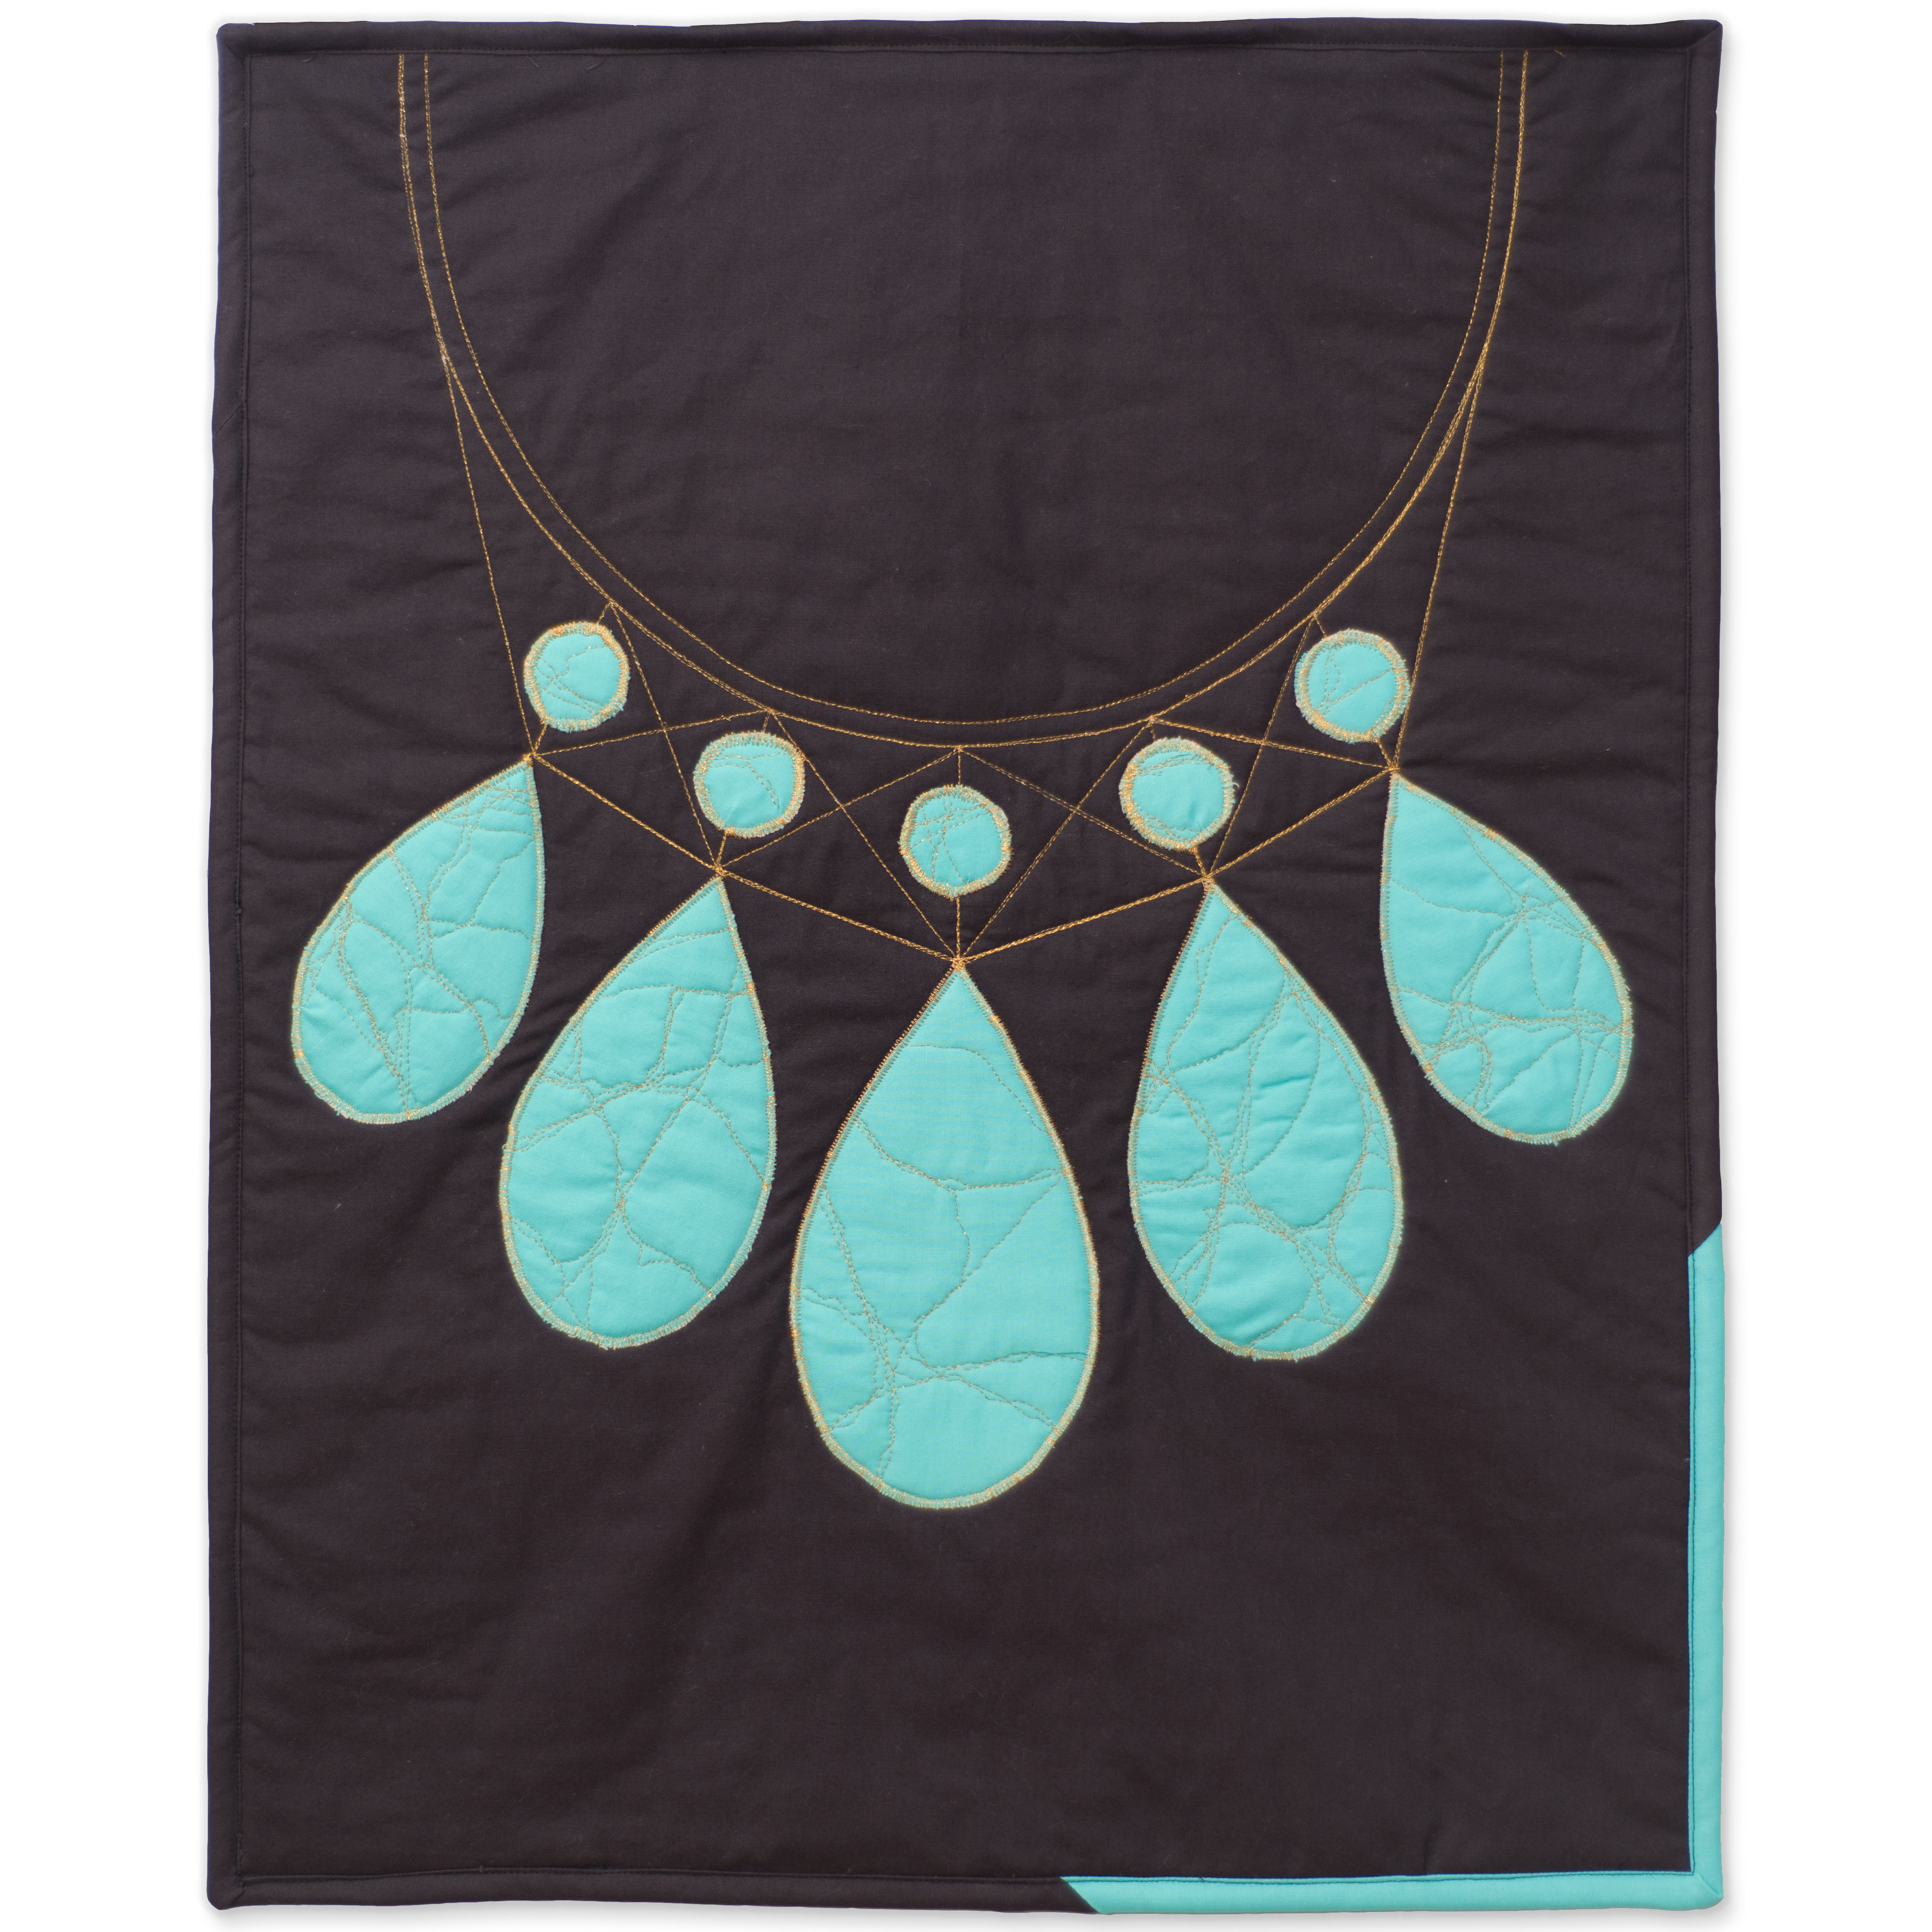 "<b>Turquoise</b><br>20"" x 25""<br>Cotton, cotton batting<br><a href=""mailto:hello@3rdstoryworkshop.com?Subject=Turquoise%20Gemology"" target=""_top"" rel=""noopener noreferrer"">Inquire</a>"